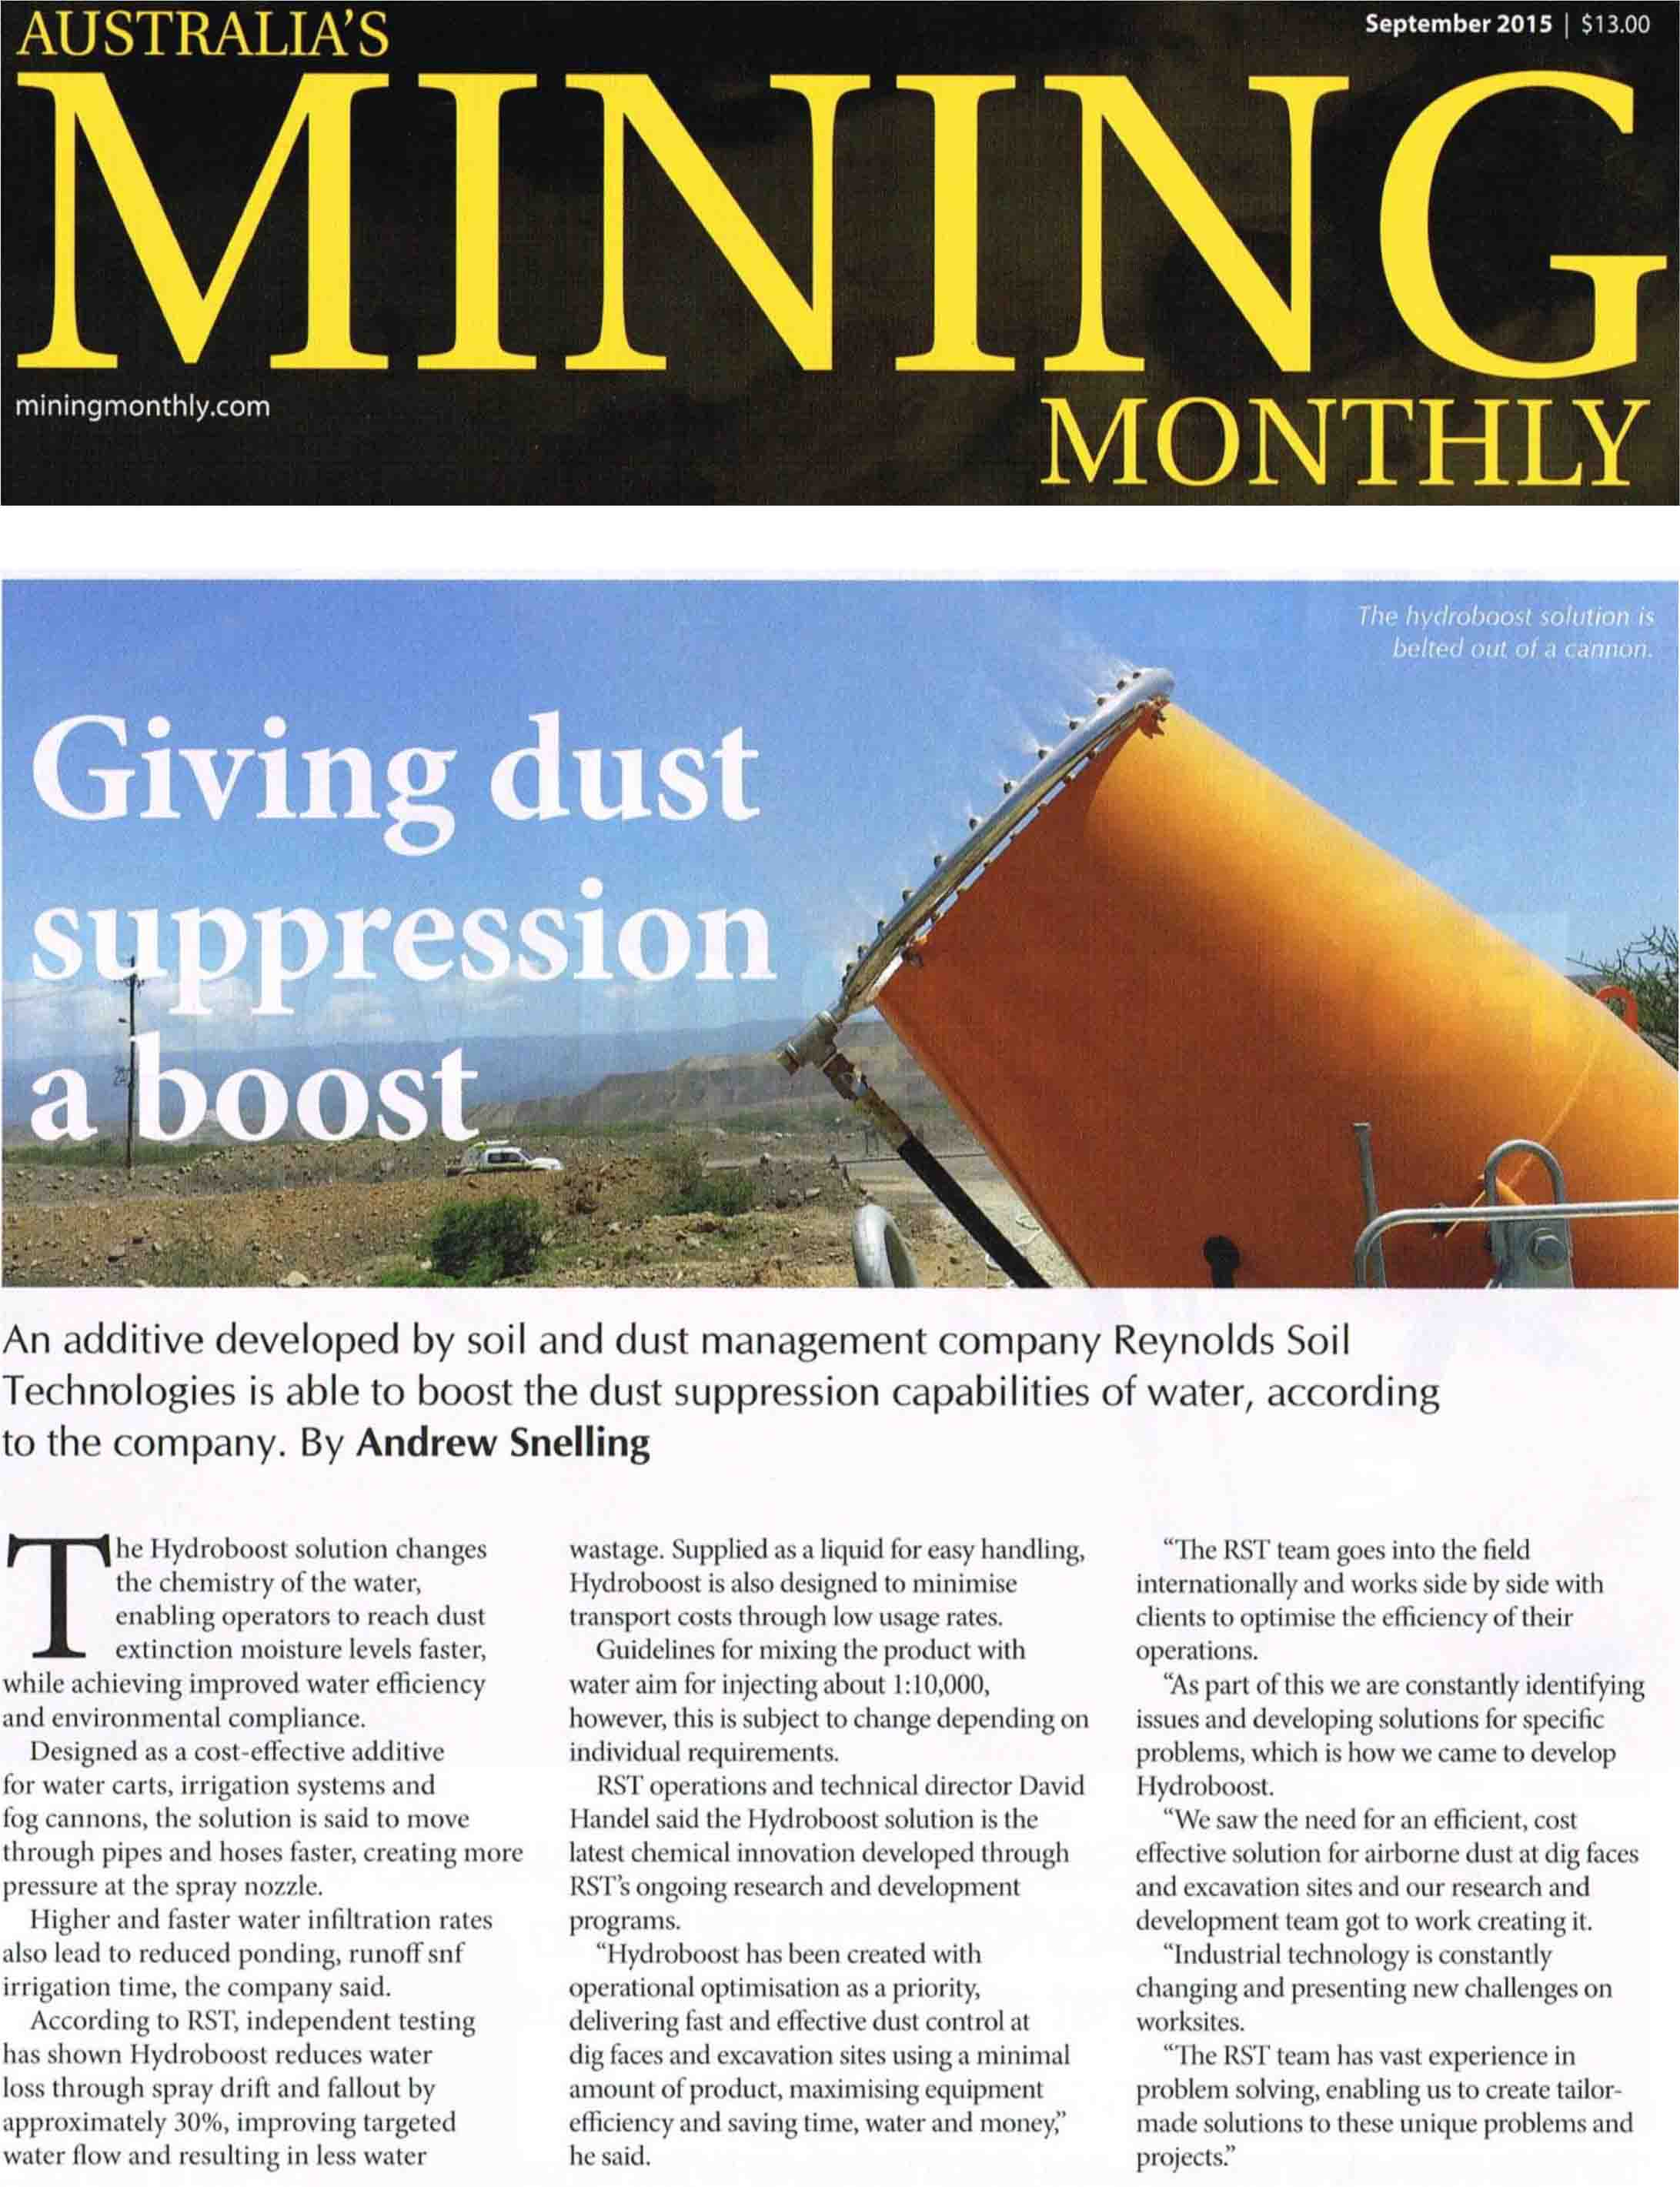 Giving dust suppression a boost